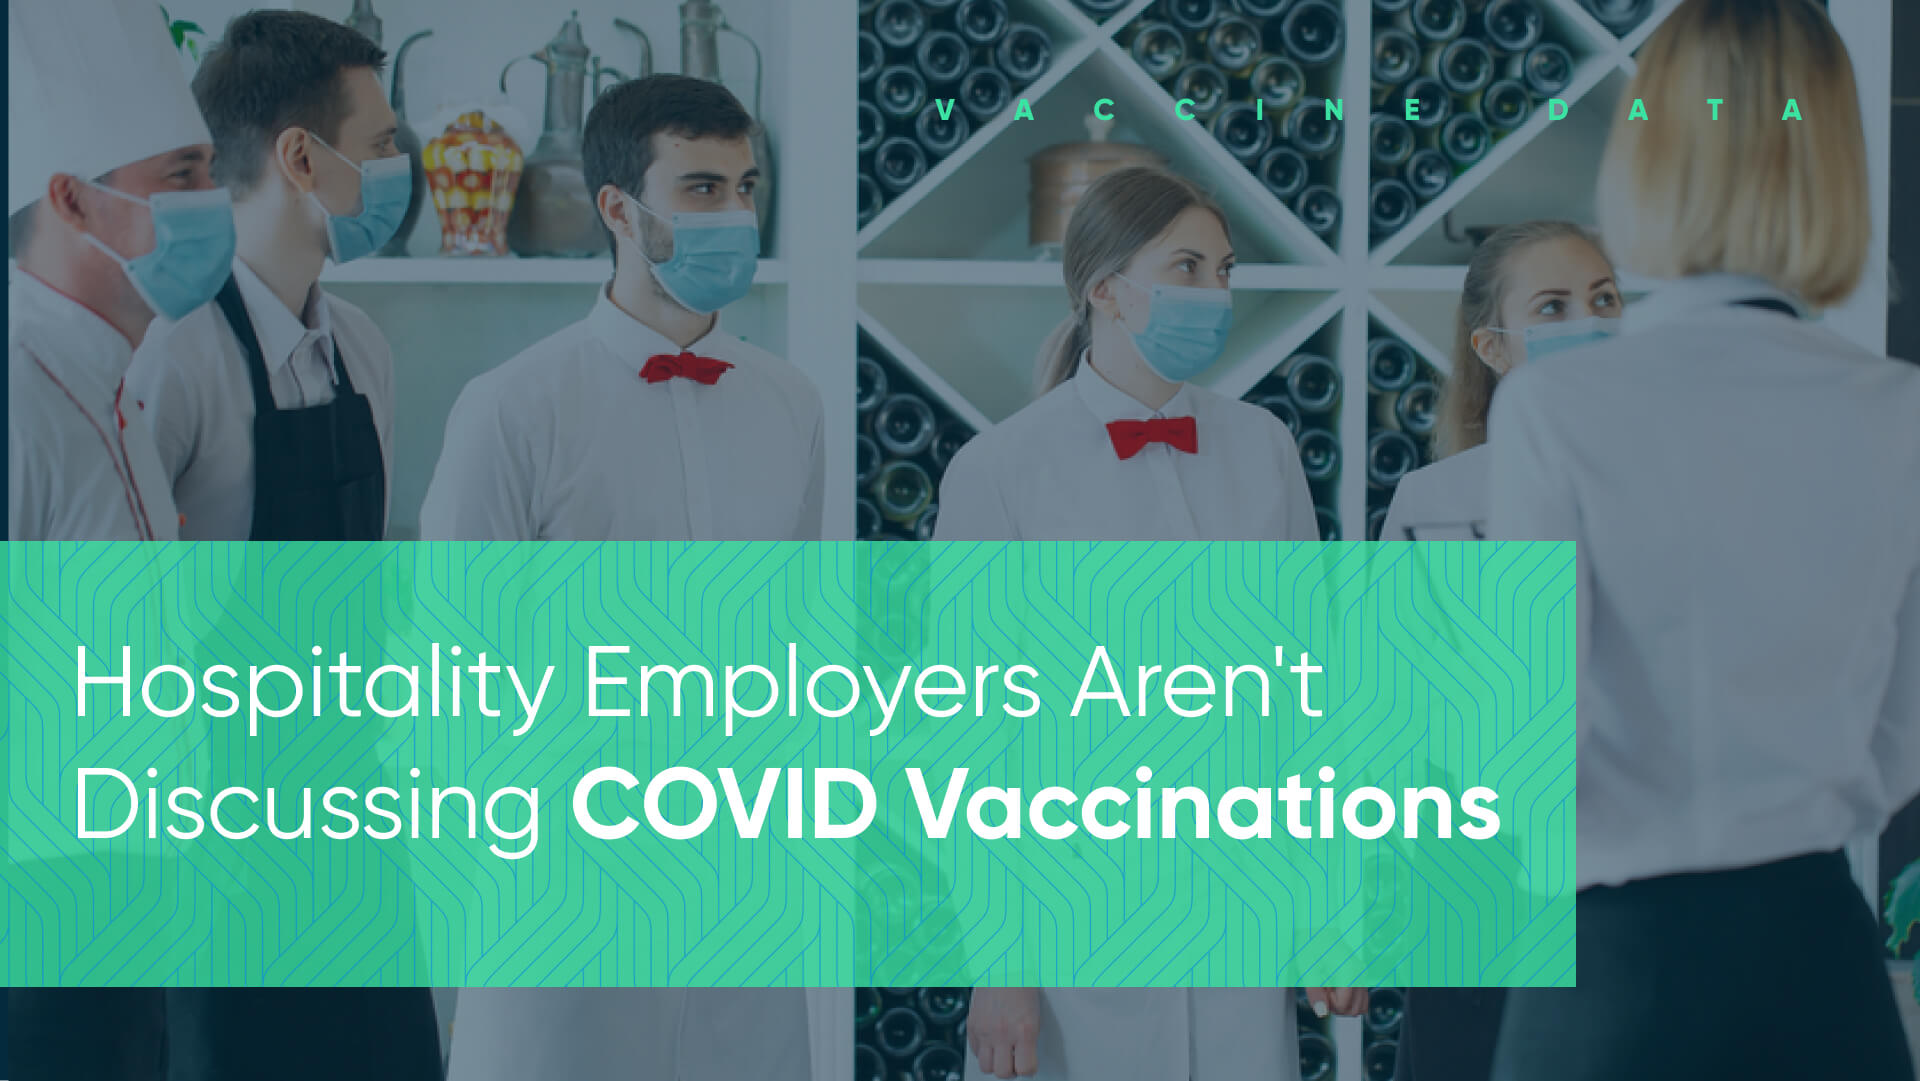 Hospitality manages need to discuss hte covid vaccine with their employees